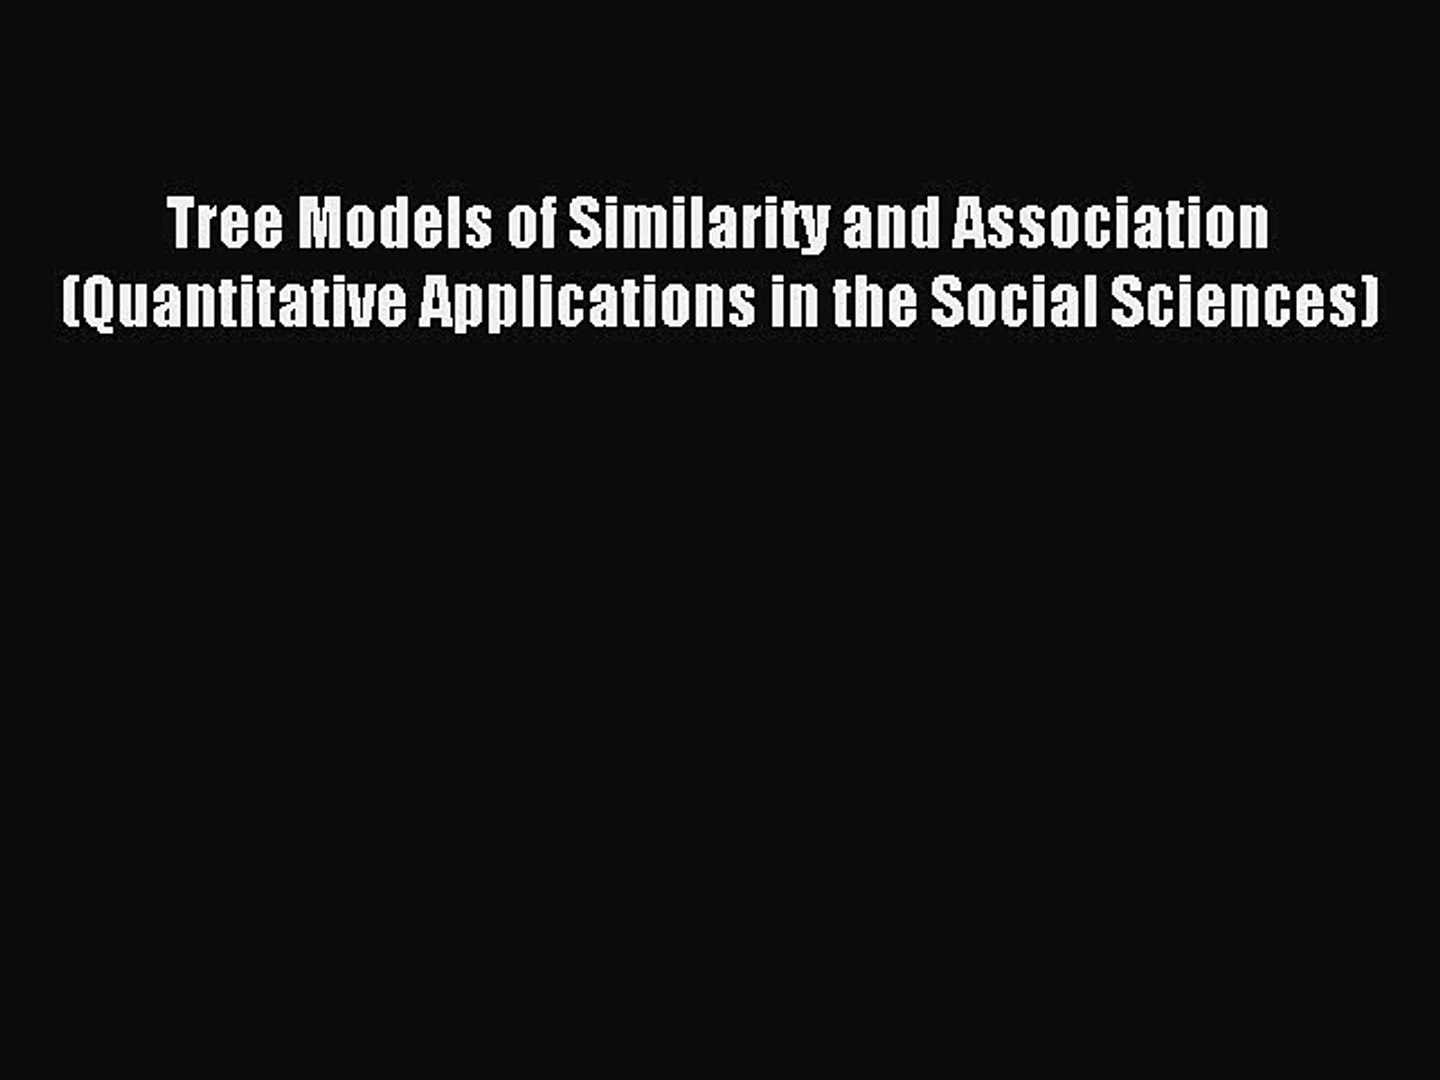 Tree models of similarity and association